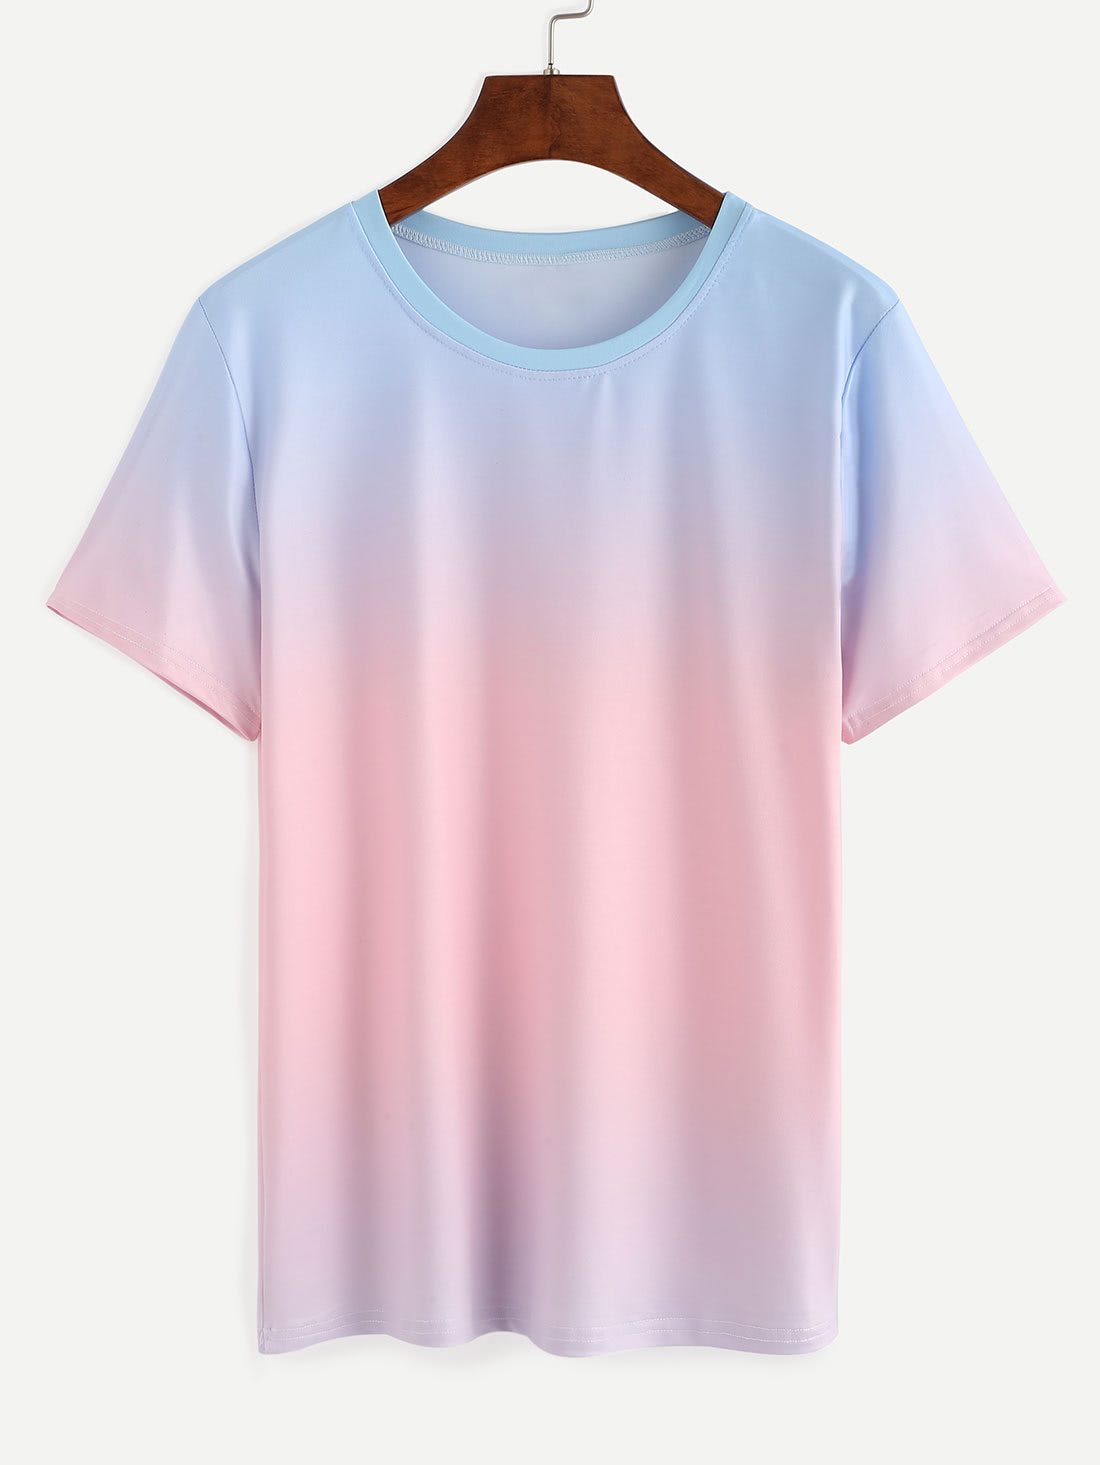 Blue Pink Ombre T Shirtfor Women Romwe